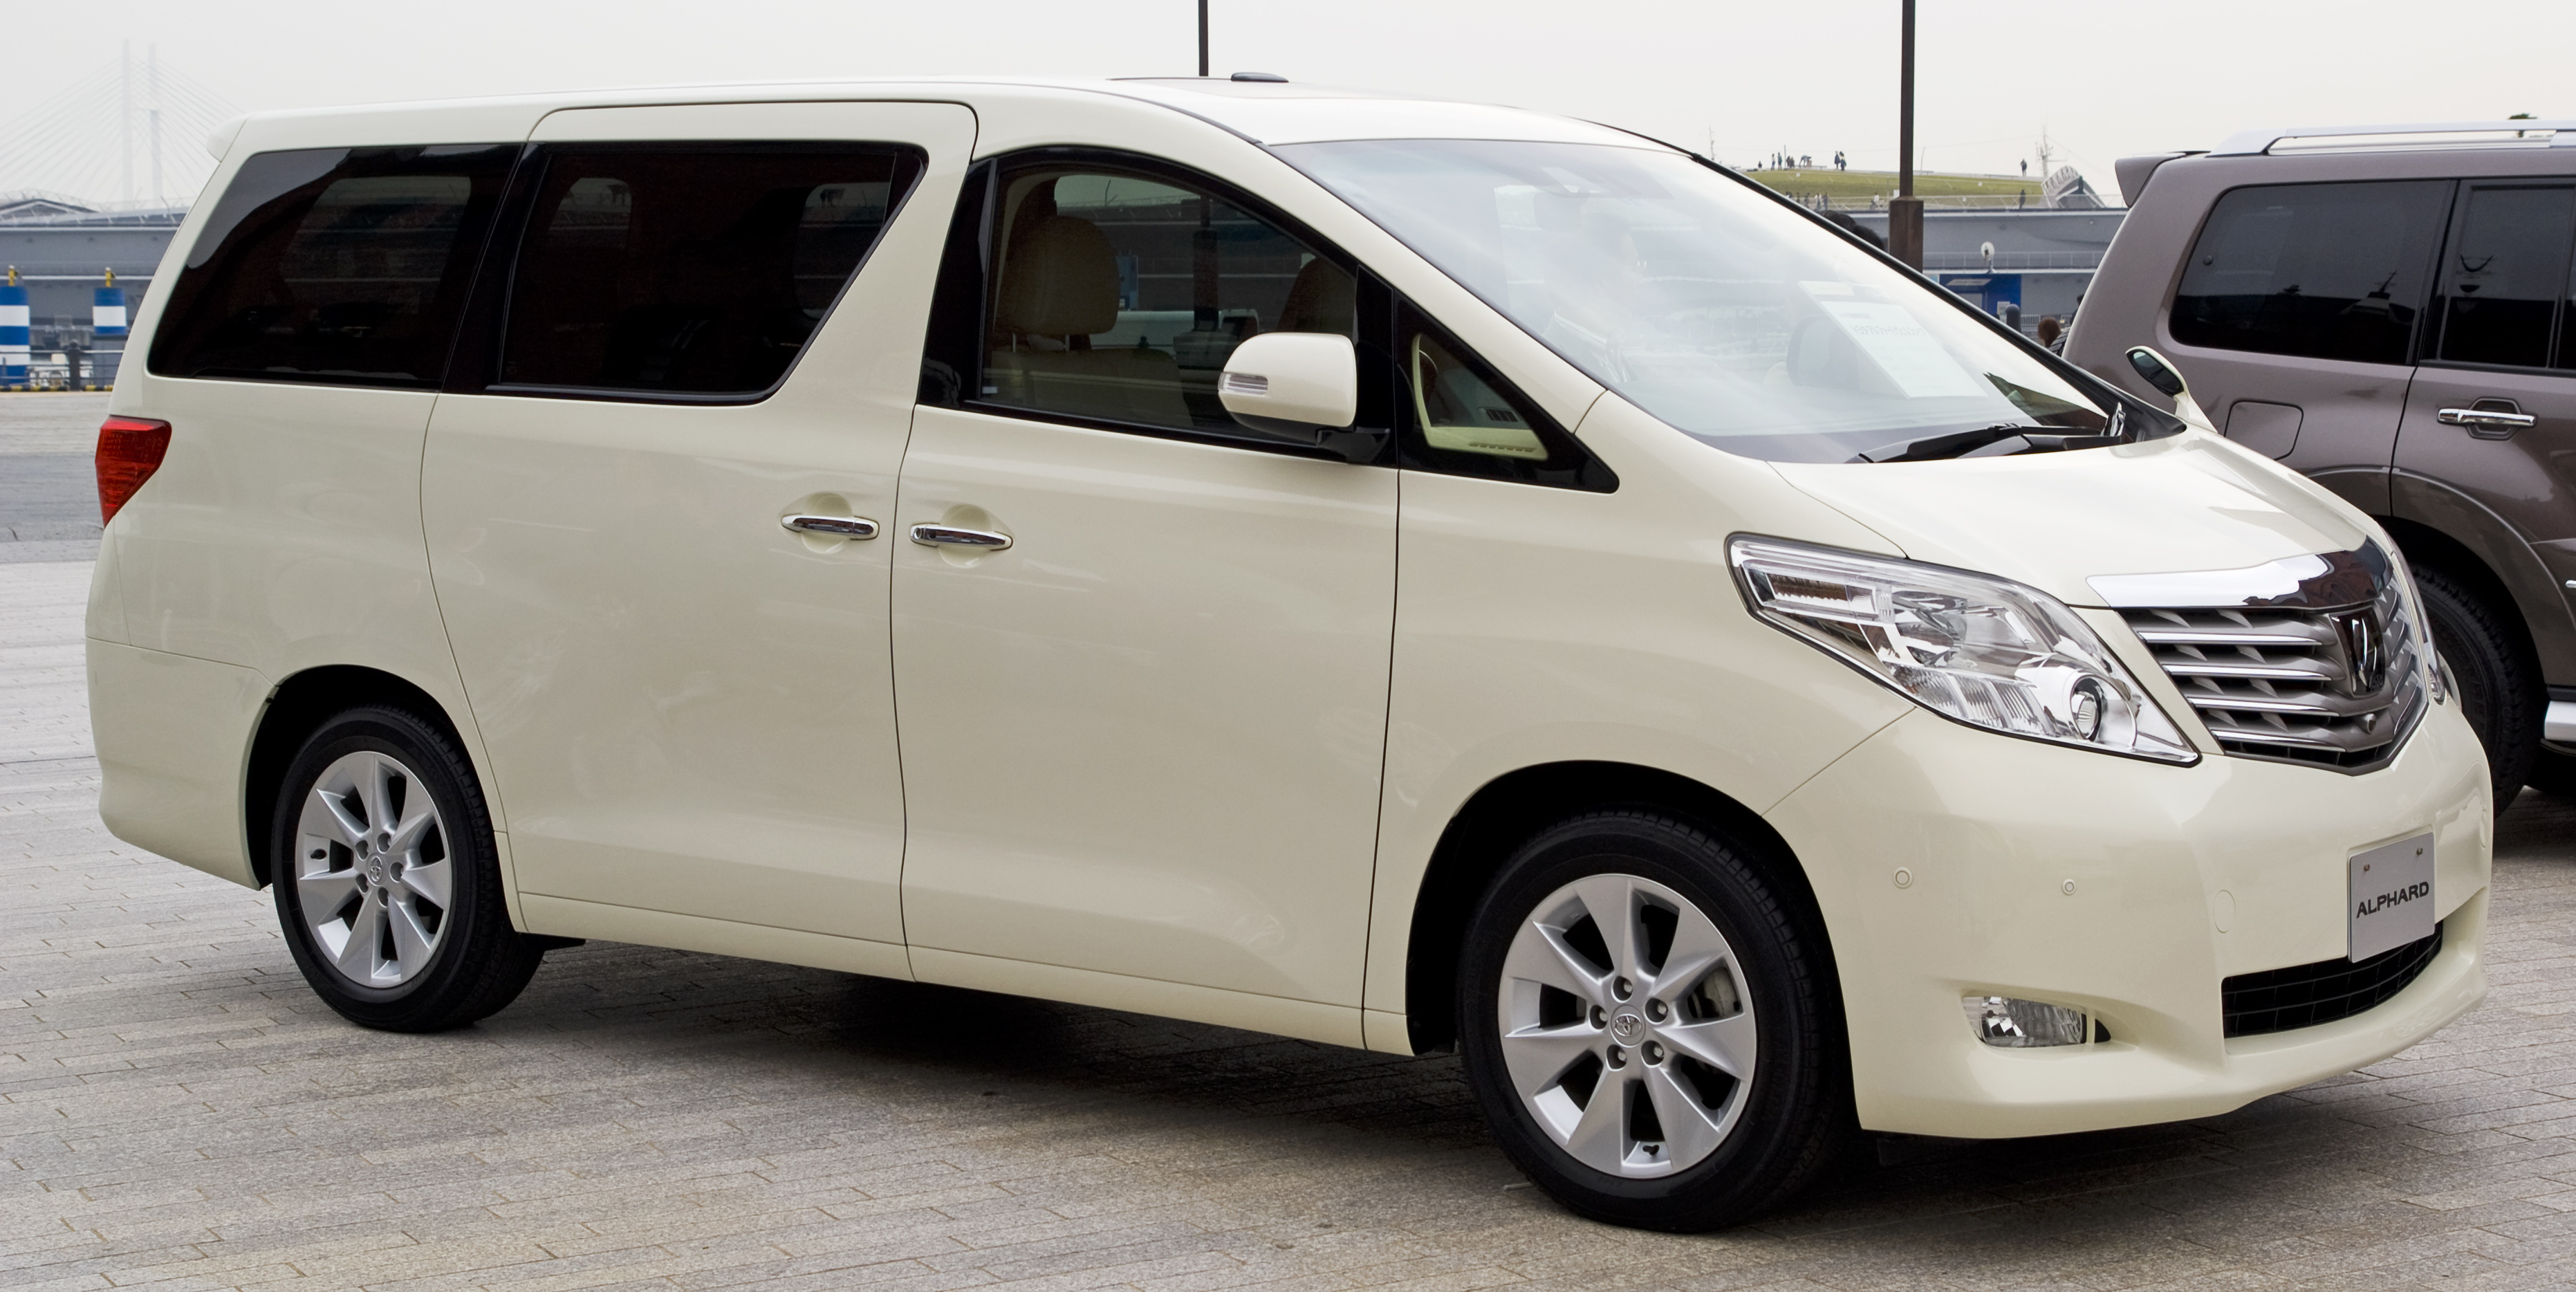 File:2008 Toyota H20 Alphard 01.JPG - Wikipedia, the free encyclopedia